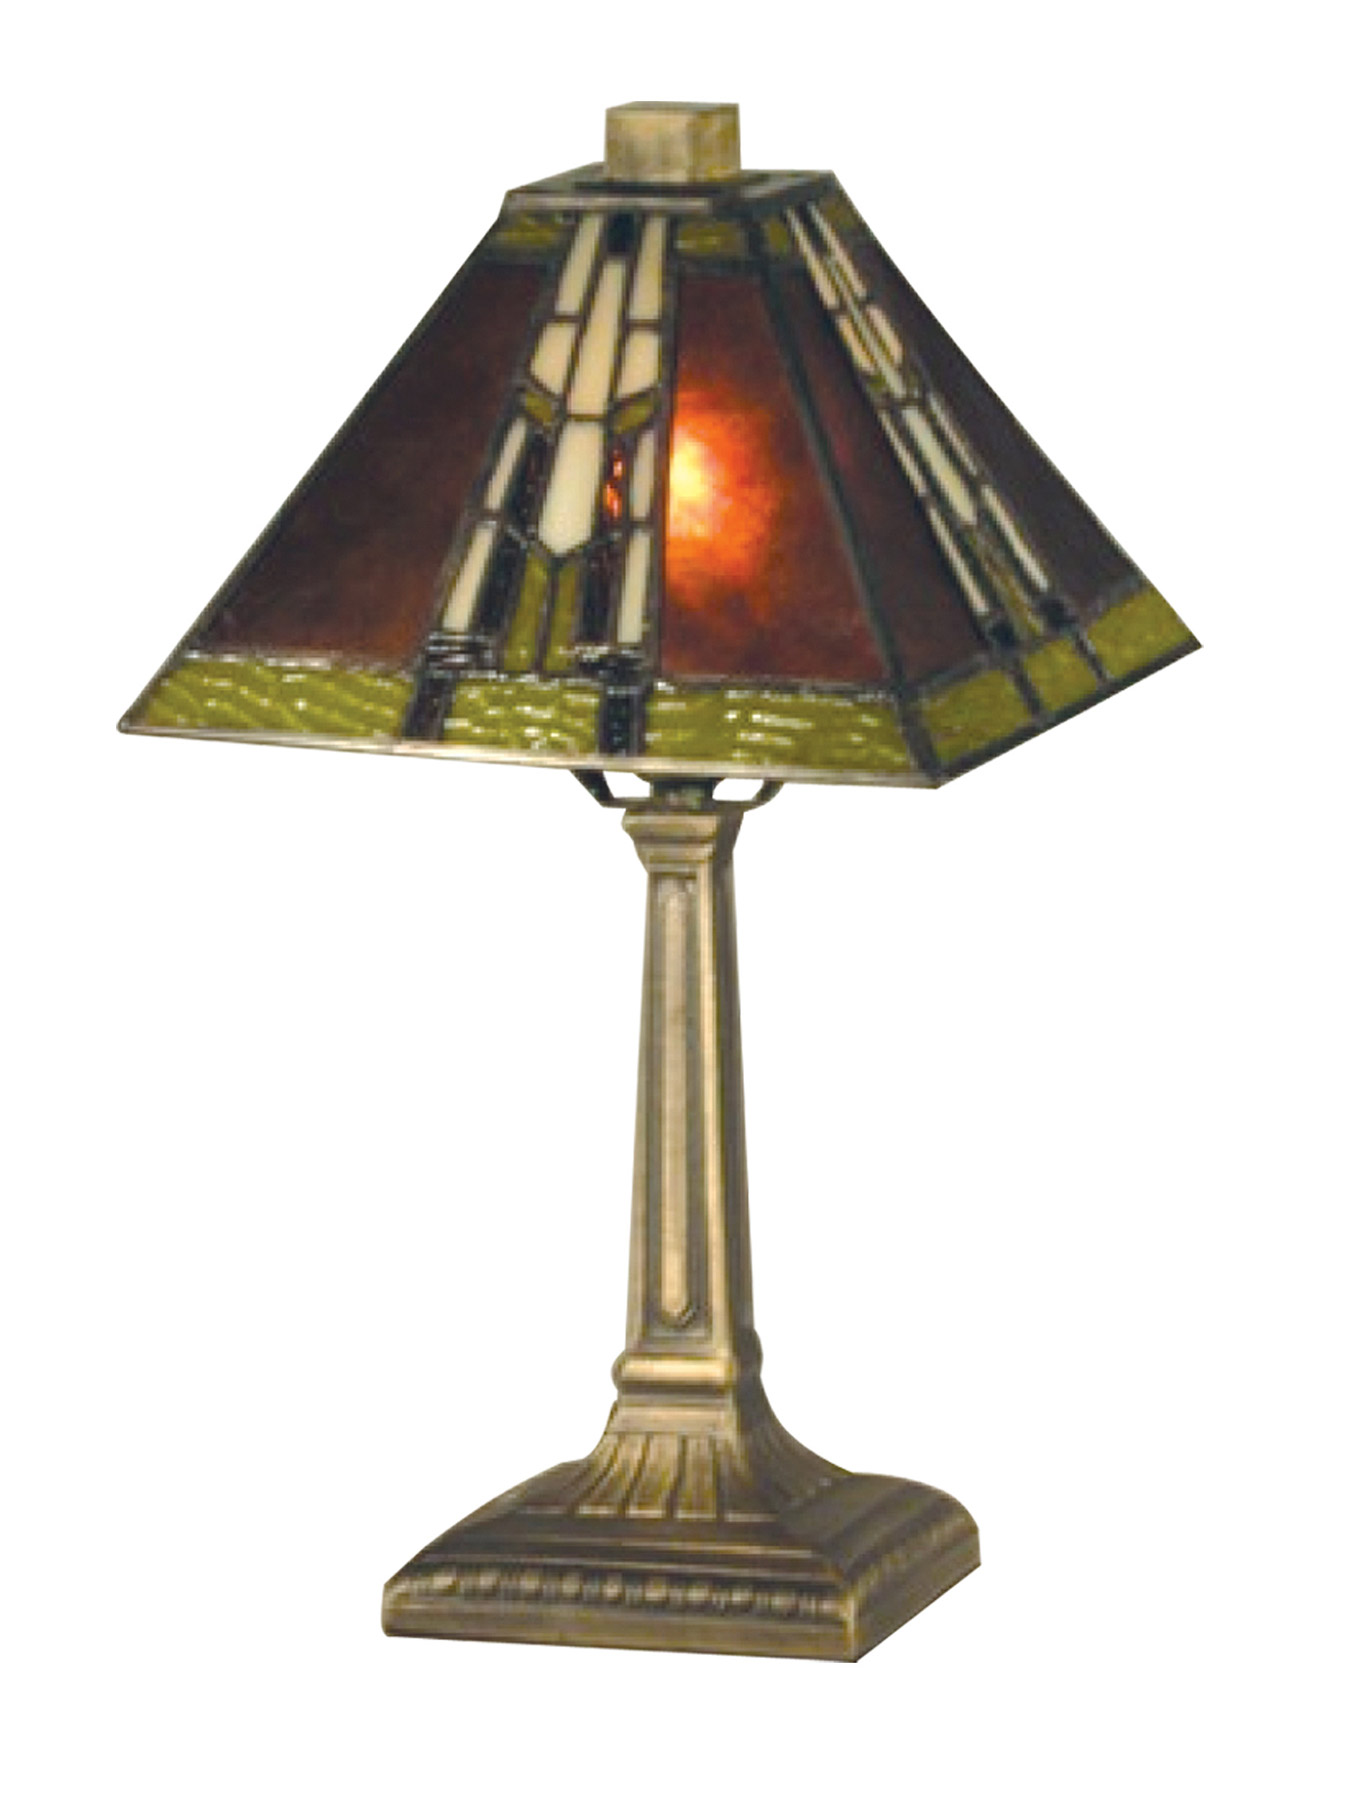 home lamps table lamps accent lamps dale tiffany ta13064. Black Bedroom Furniture Sets. Home Design Ideas